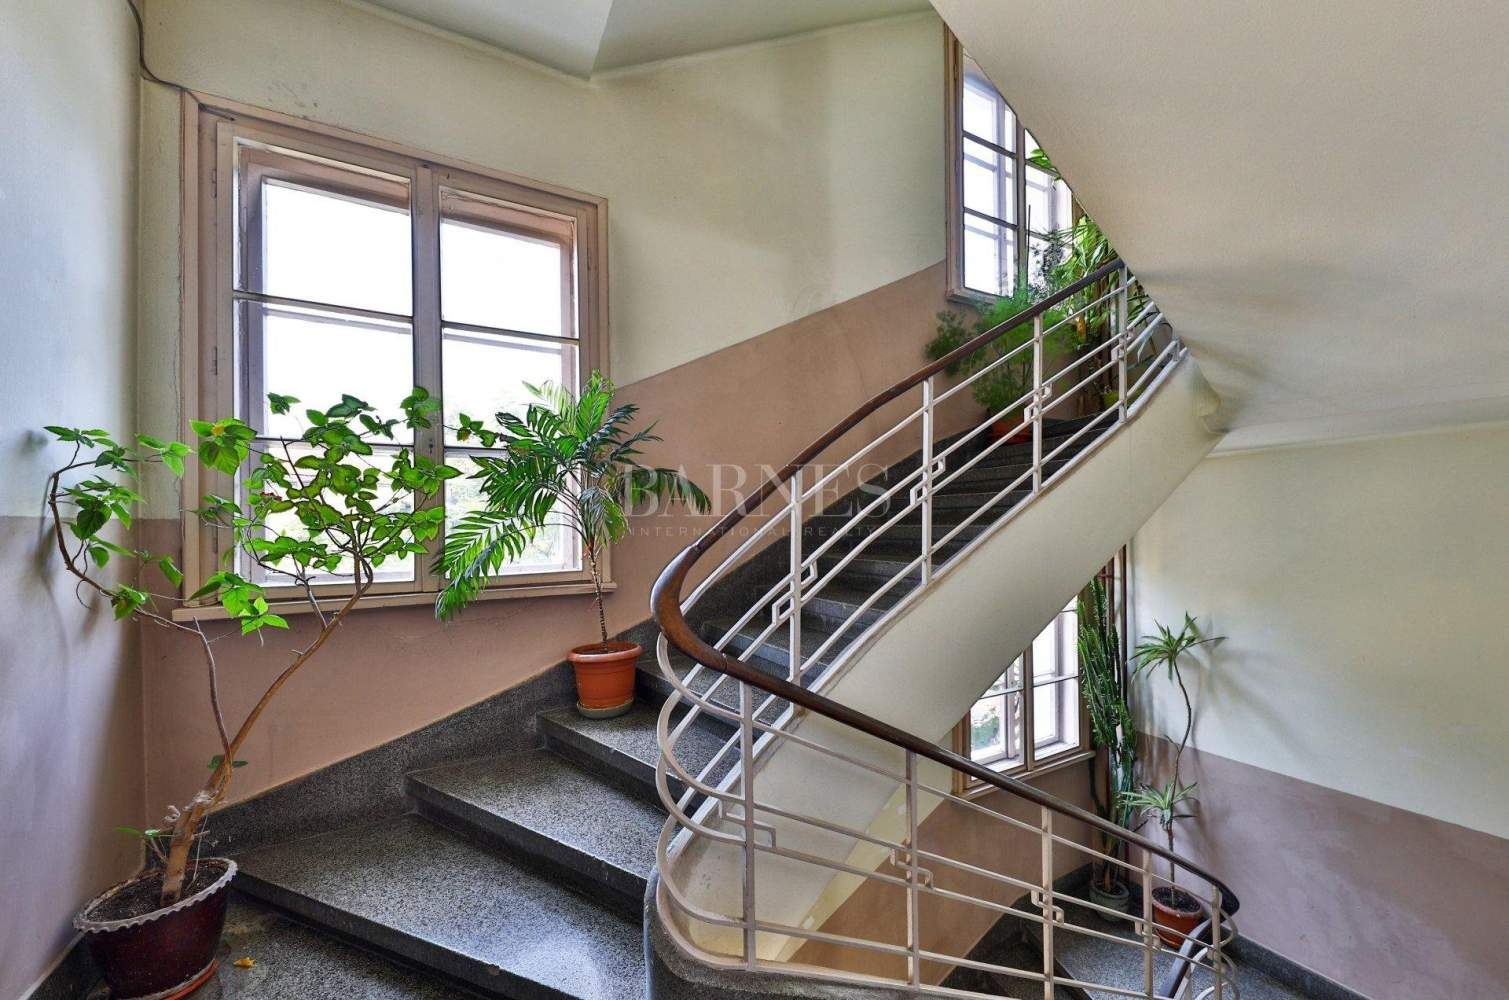 Sofia  - Offices  - picture 16